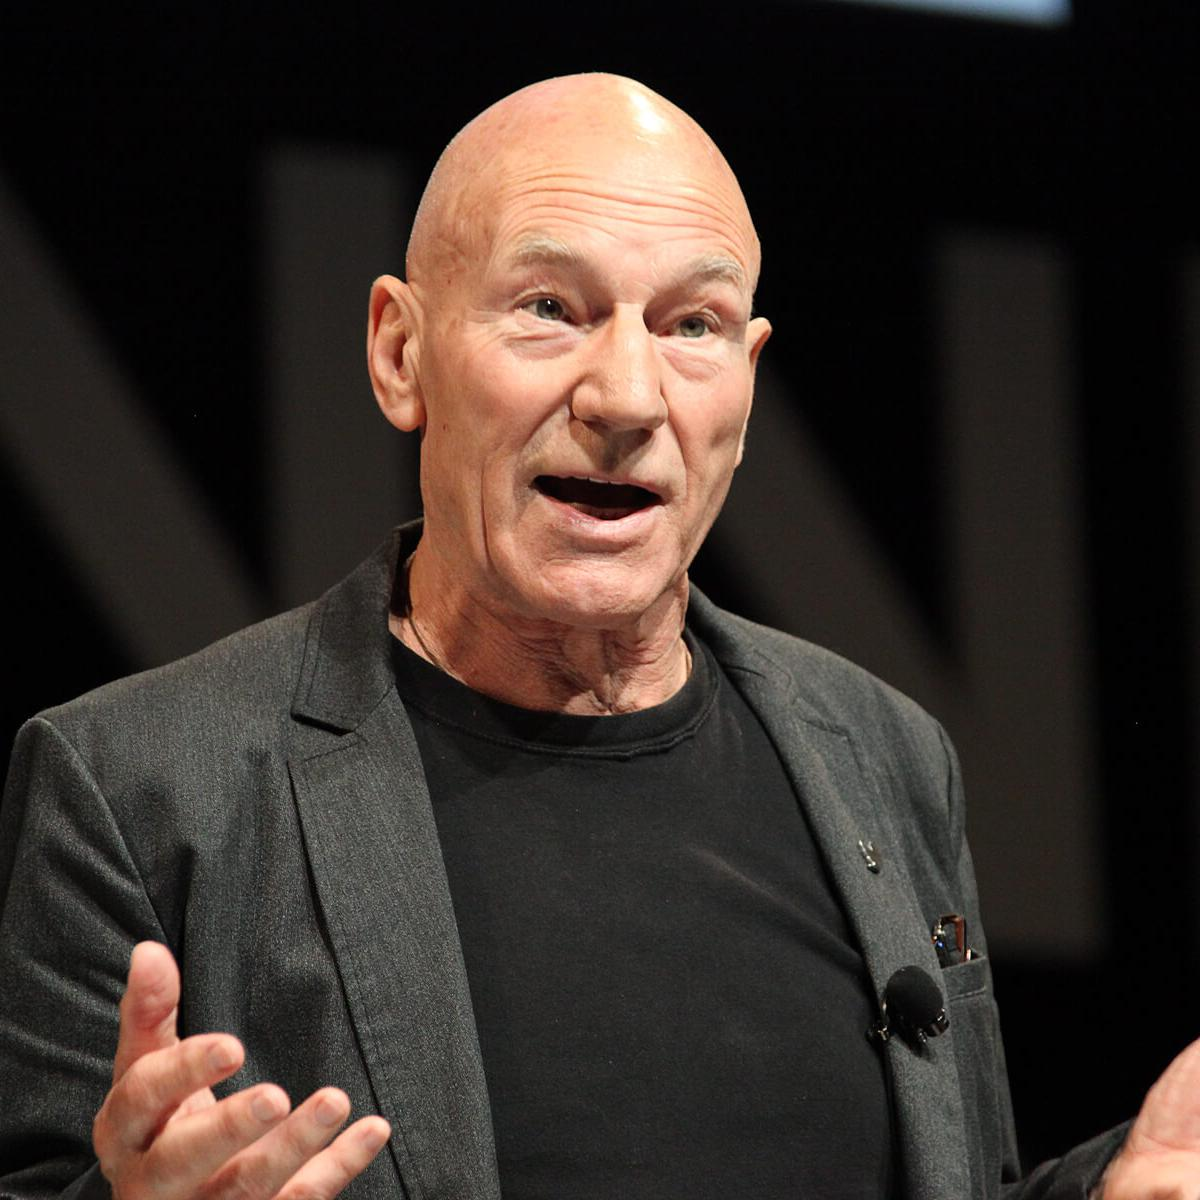 Portrait of English actor Sir Patrick Stewart by Julian Hanford at Cannes Lions 2017